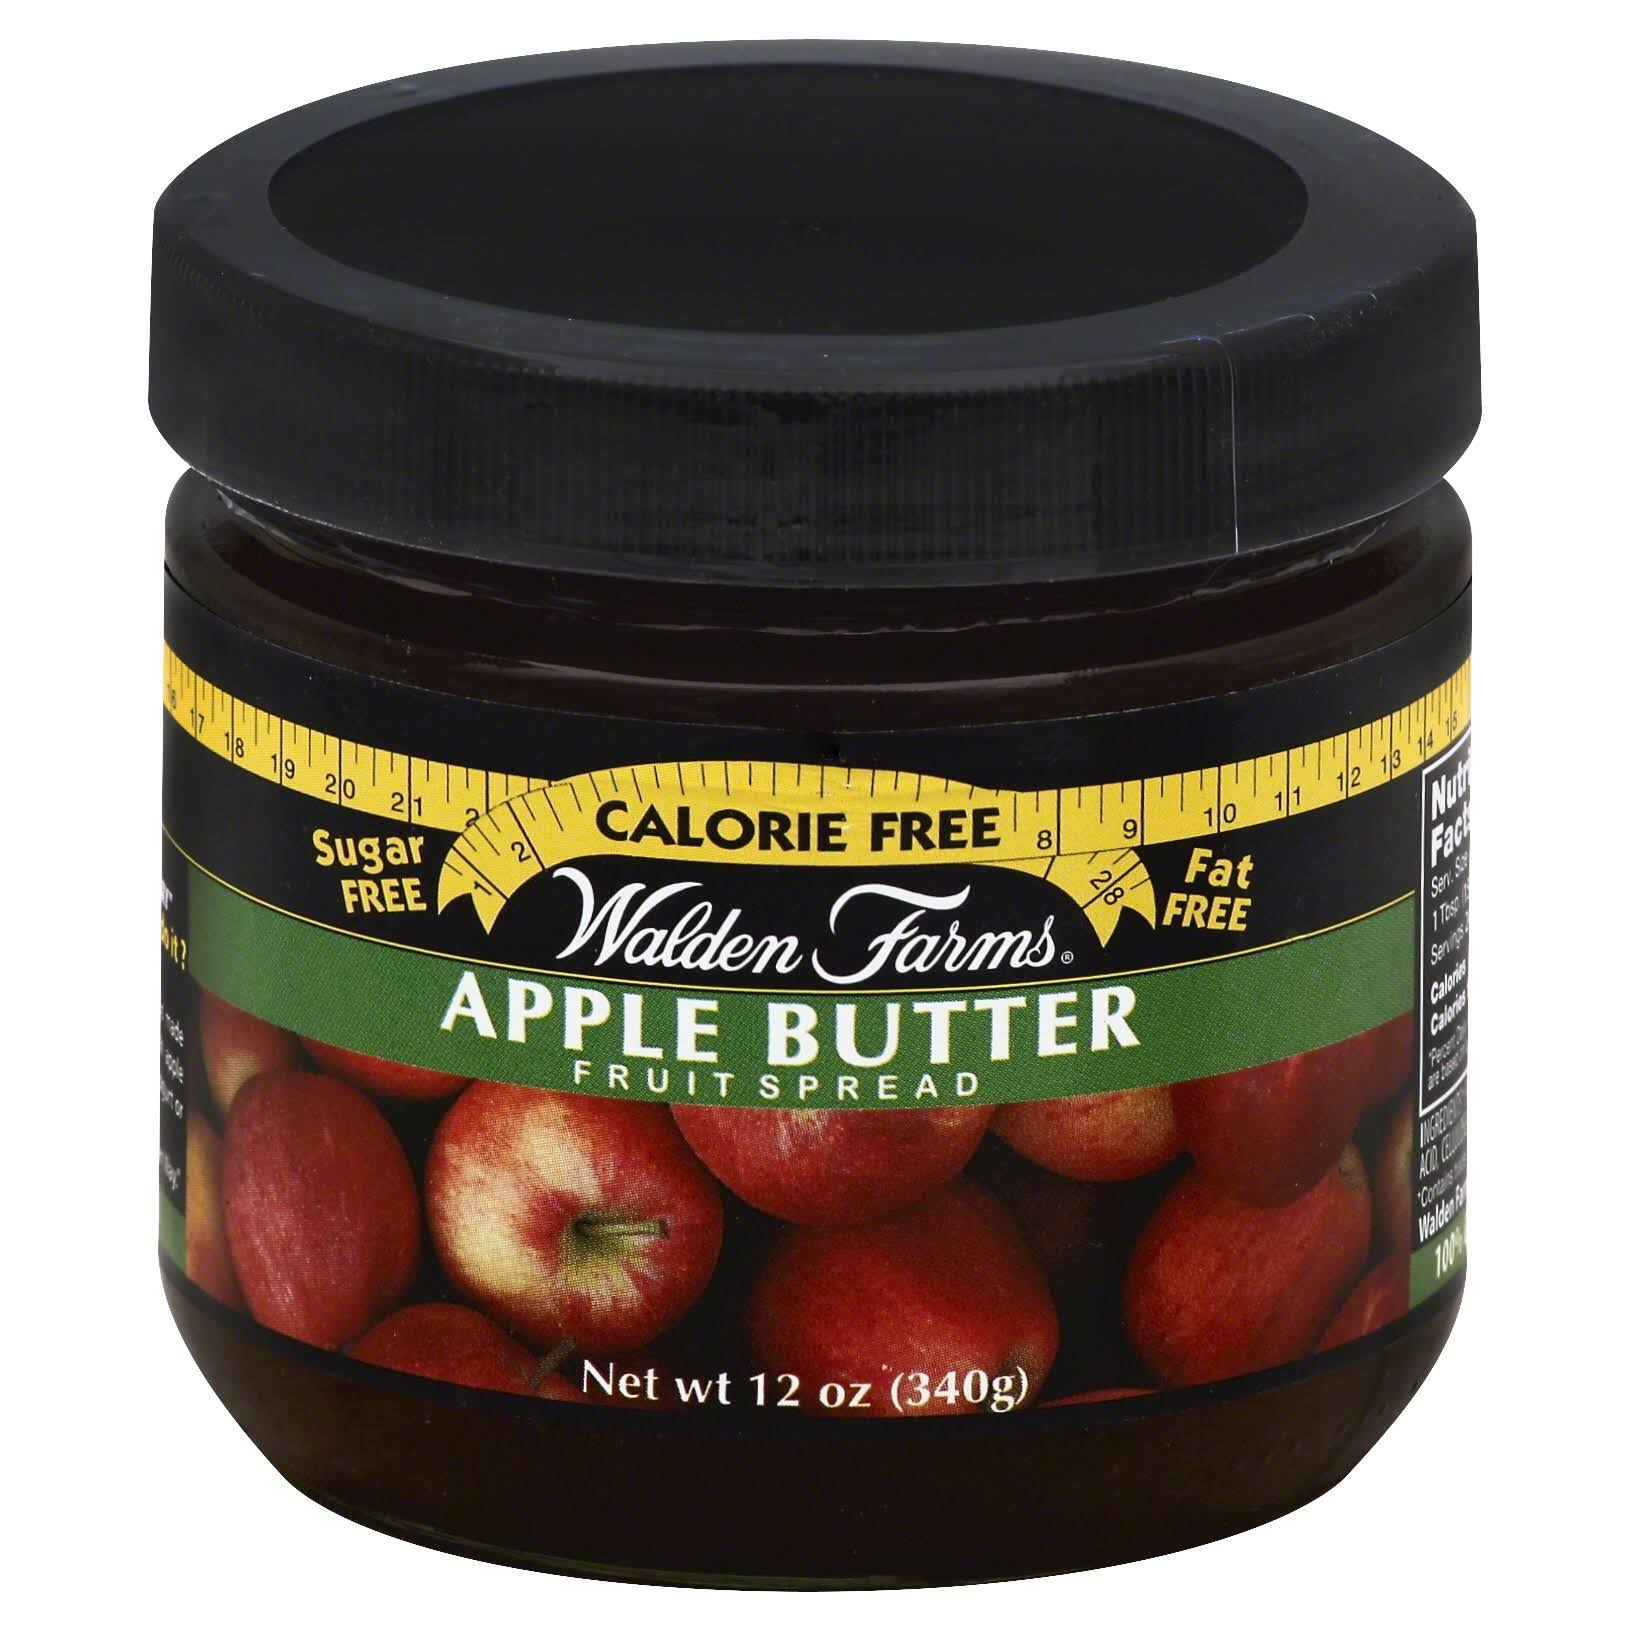 Walden Farms Calorie-Free Apple Butter Fruit Spread - 340g